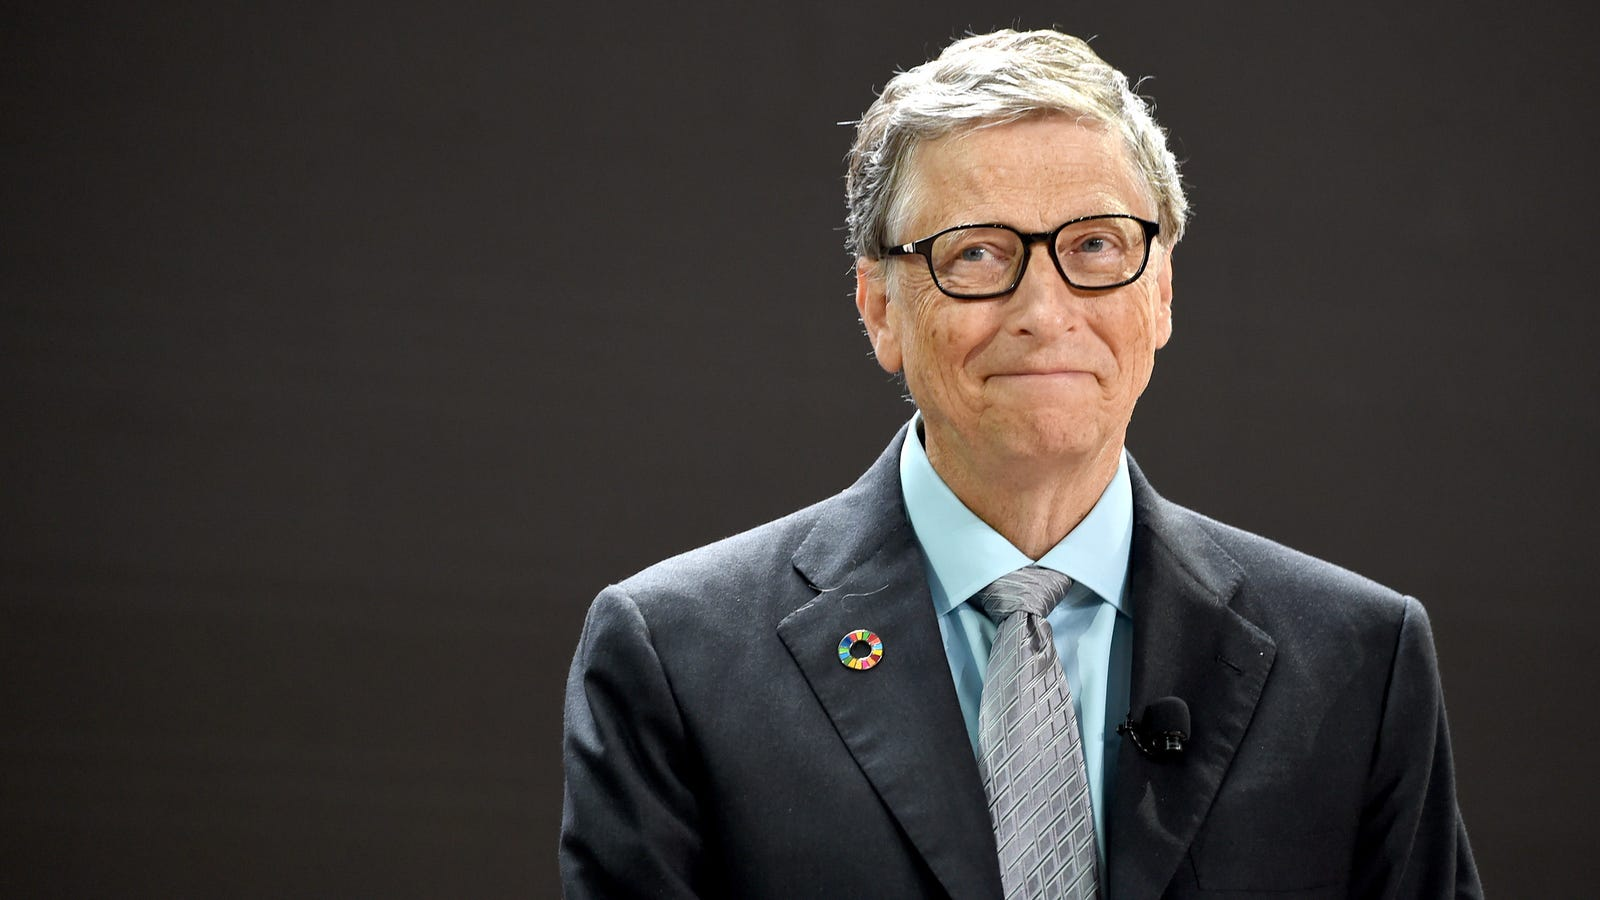 Bill Gates Explains He Met With Jeffrey Epstein Because Epstein Knew 'a Lot of Rich People'